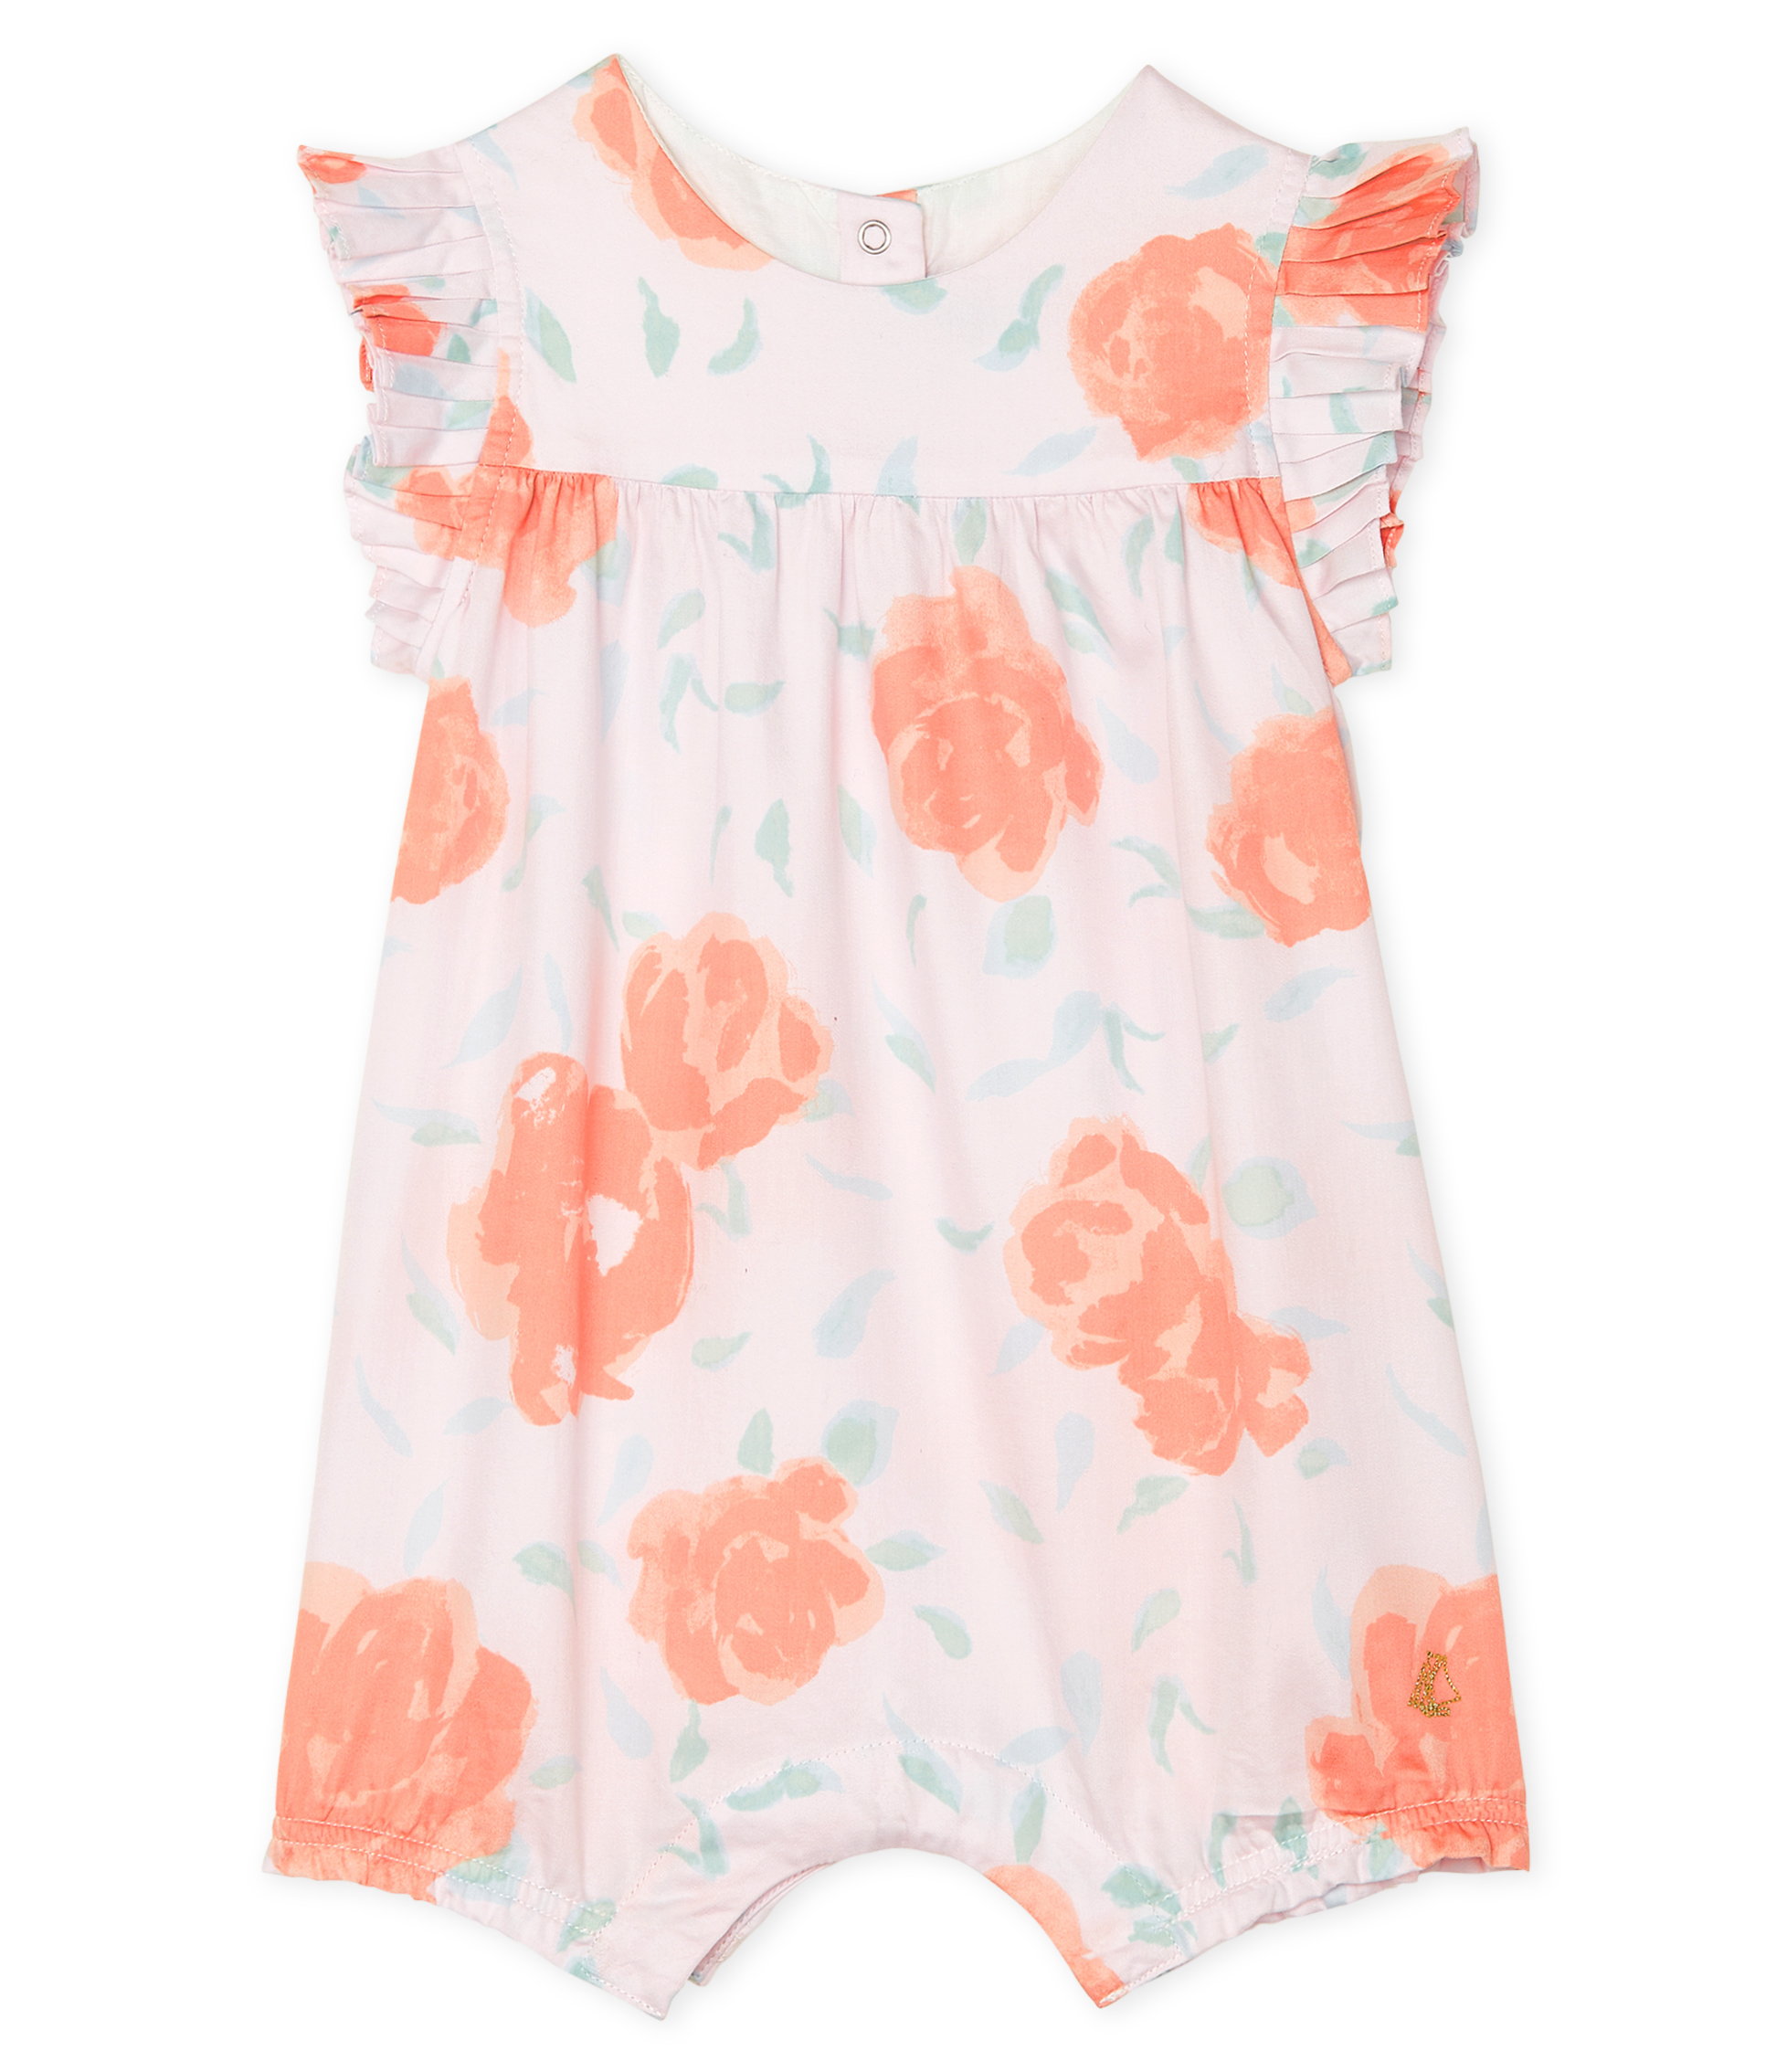 Print satin playsuit for baby girls